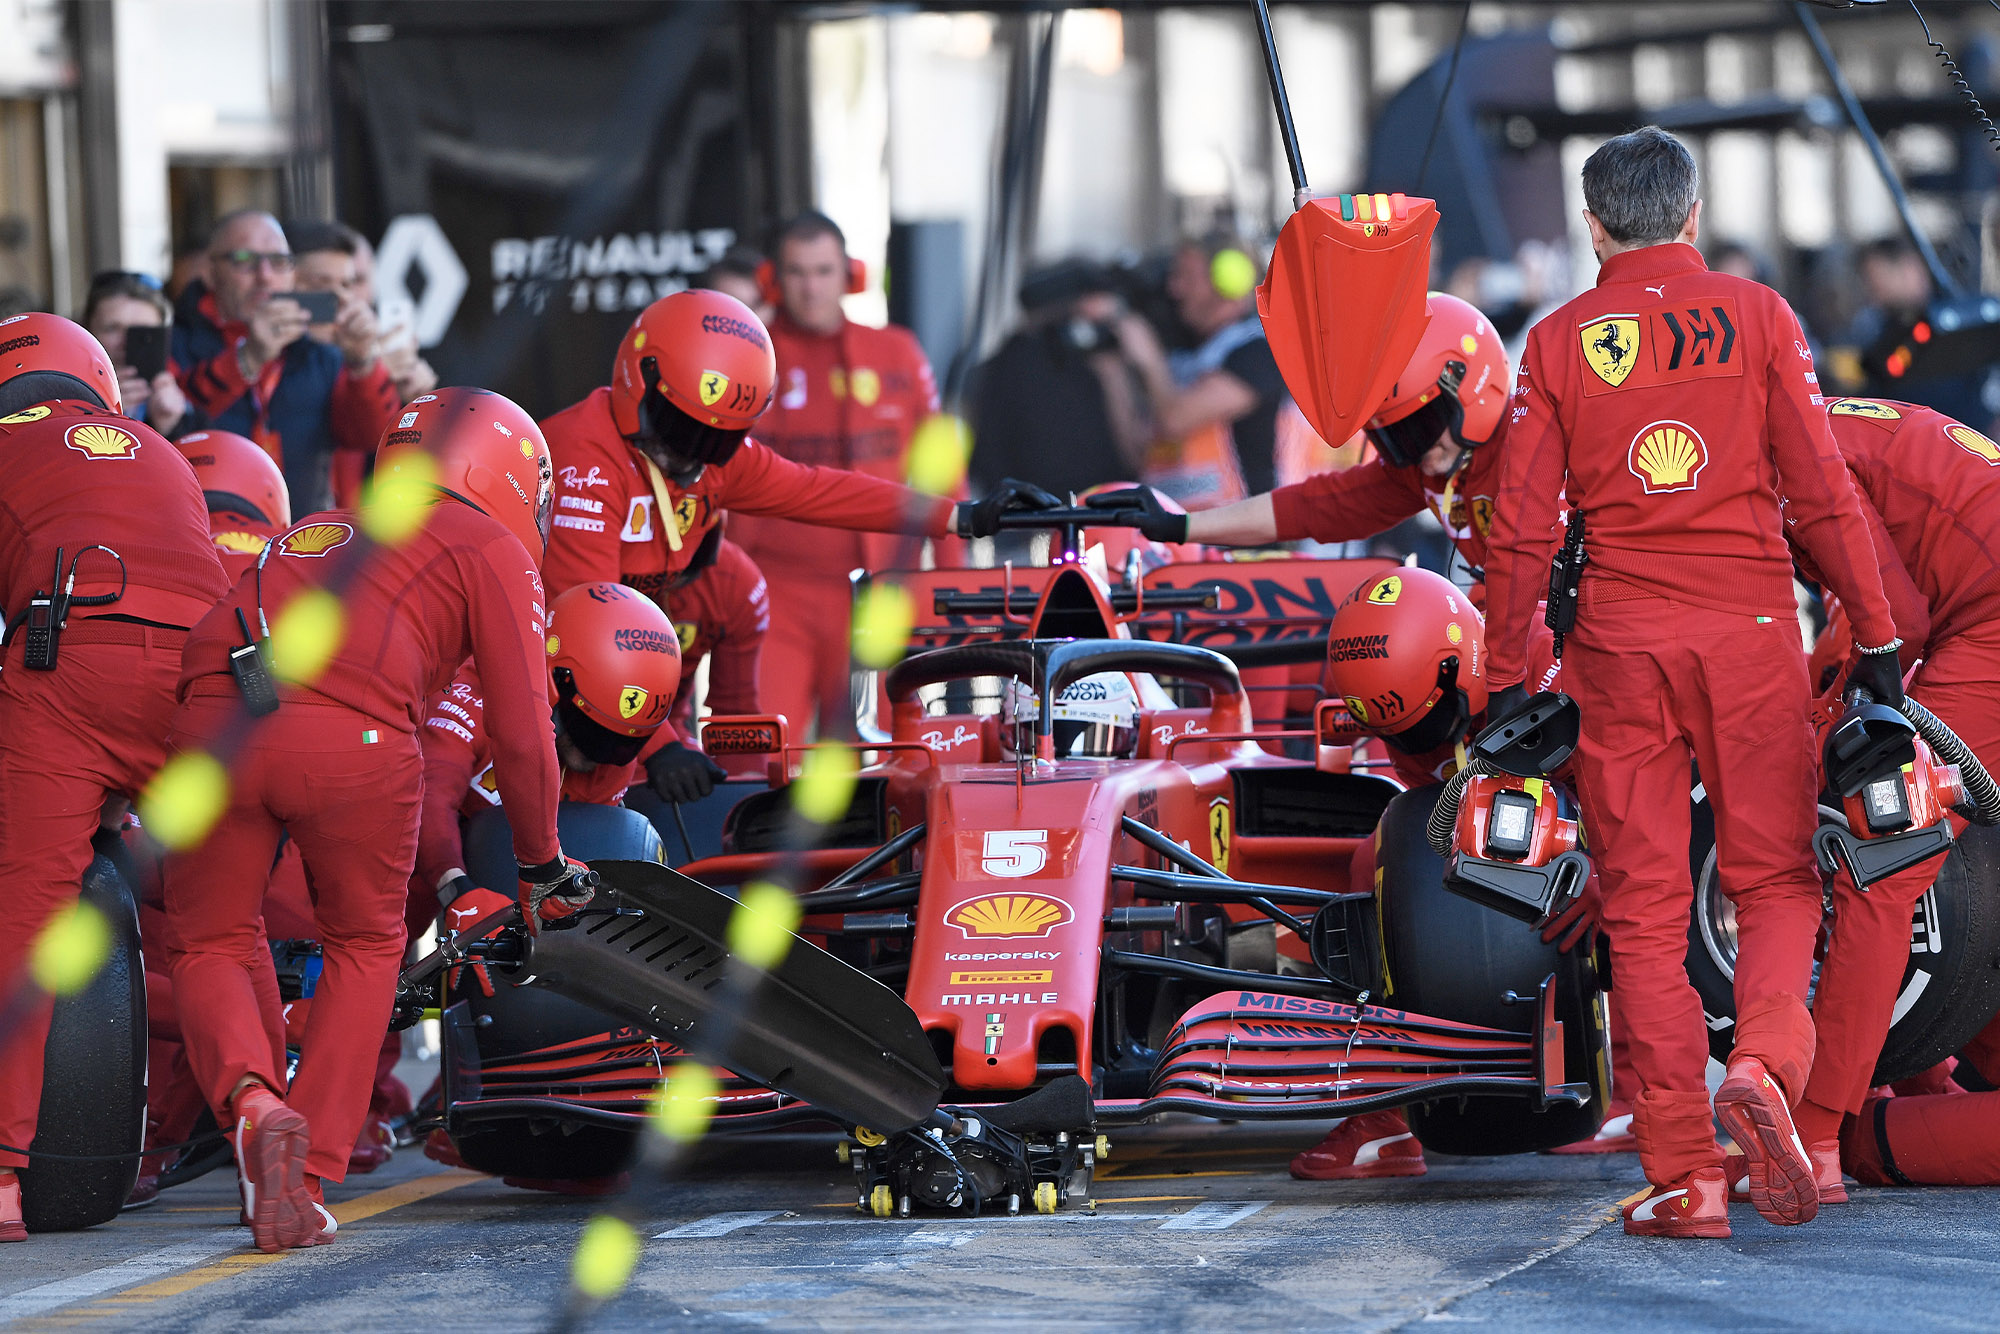 FIA 'not satisfied' with legality of Ferrari engine, but defends settlement